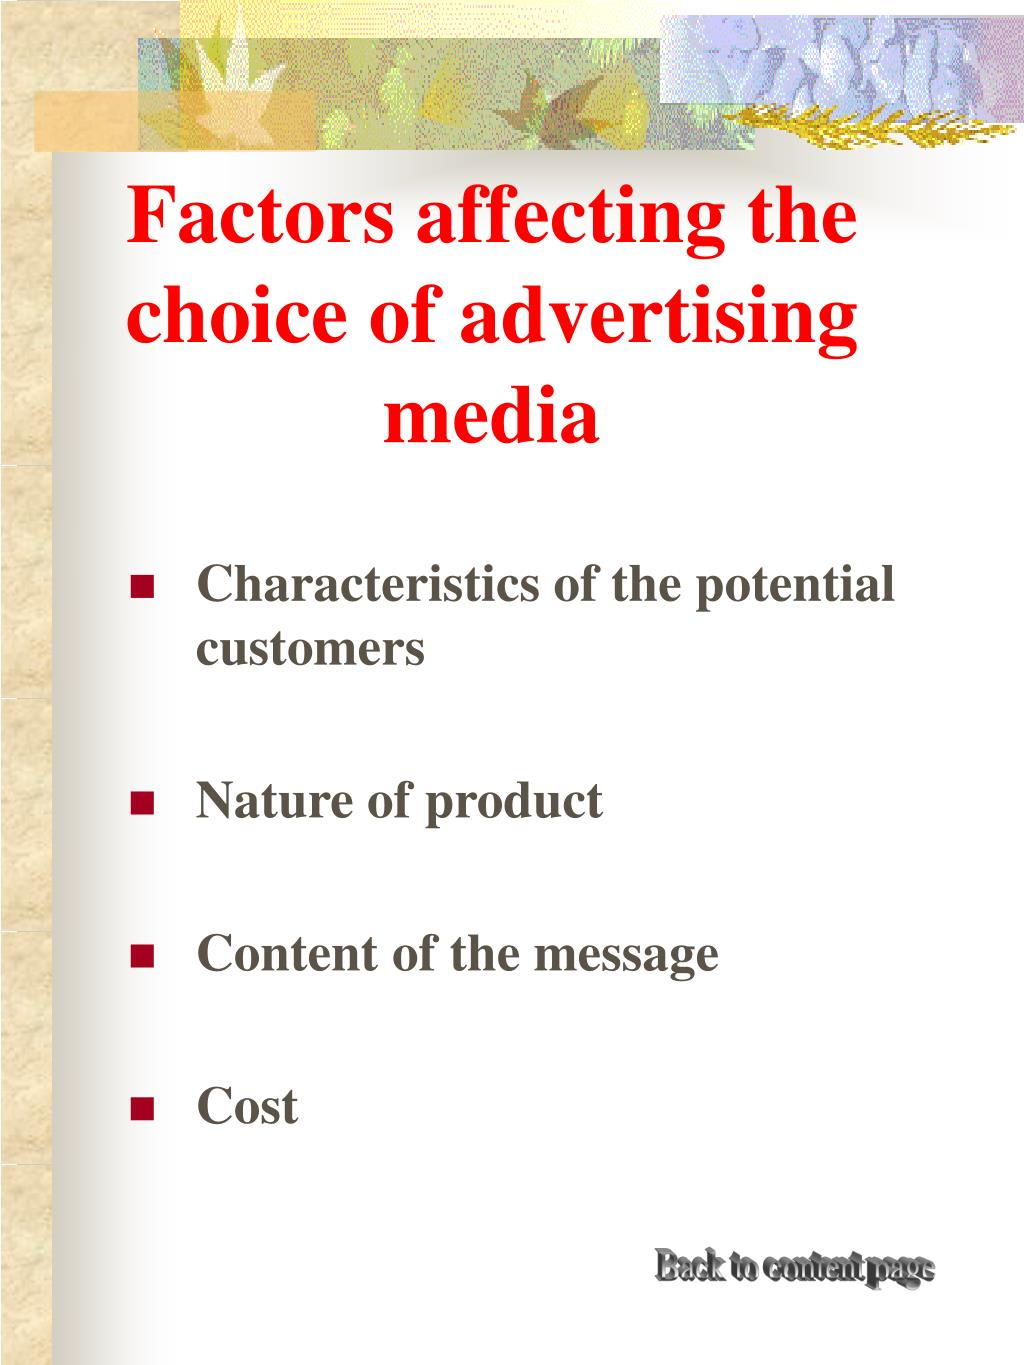 Factors affecting the choice of advertising media